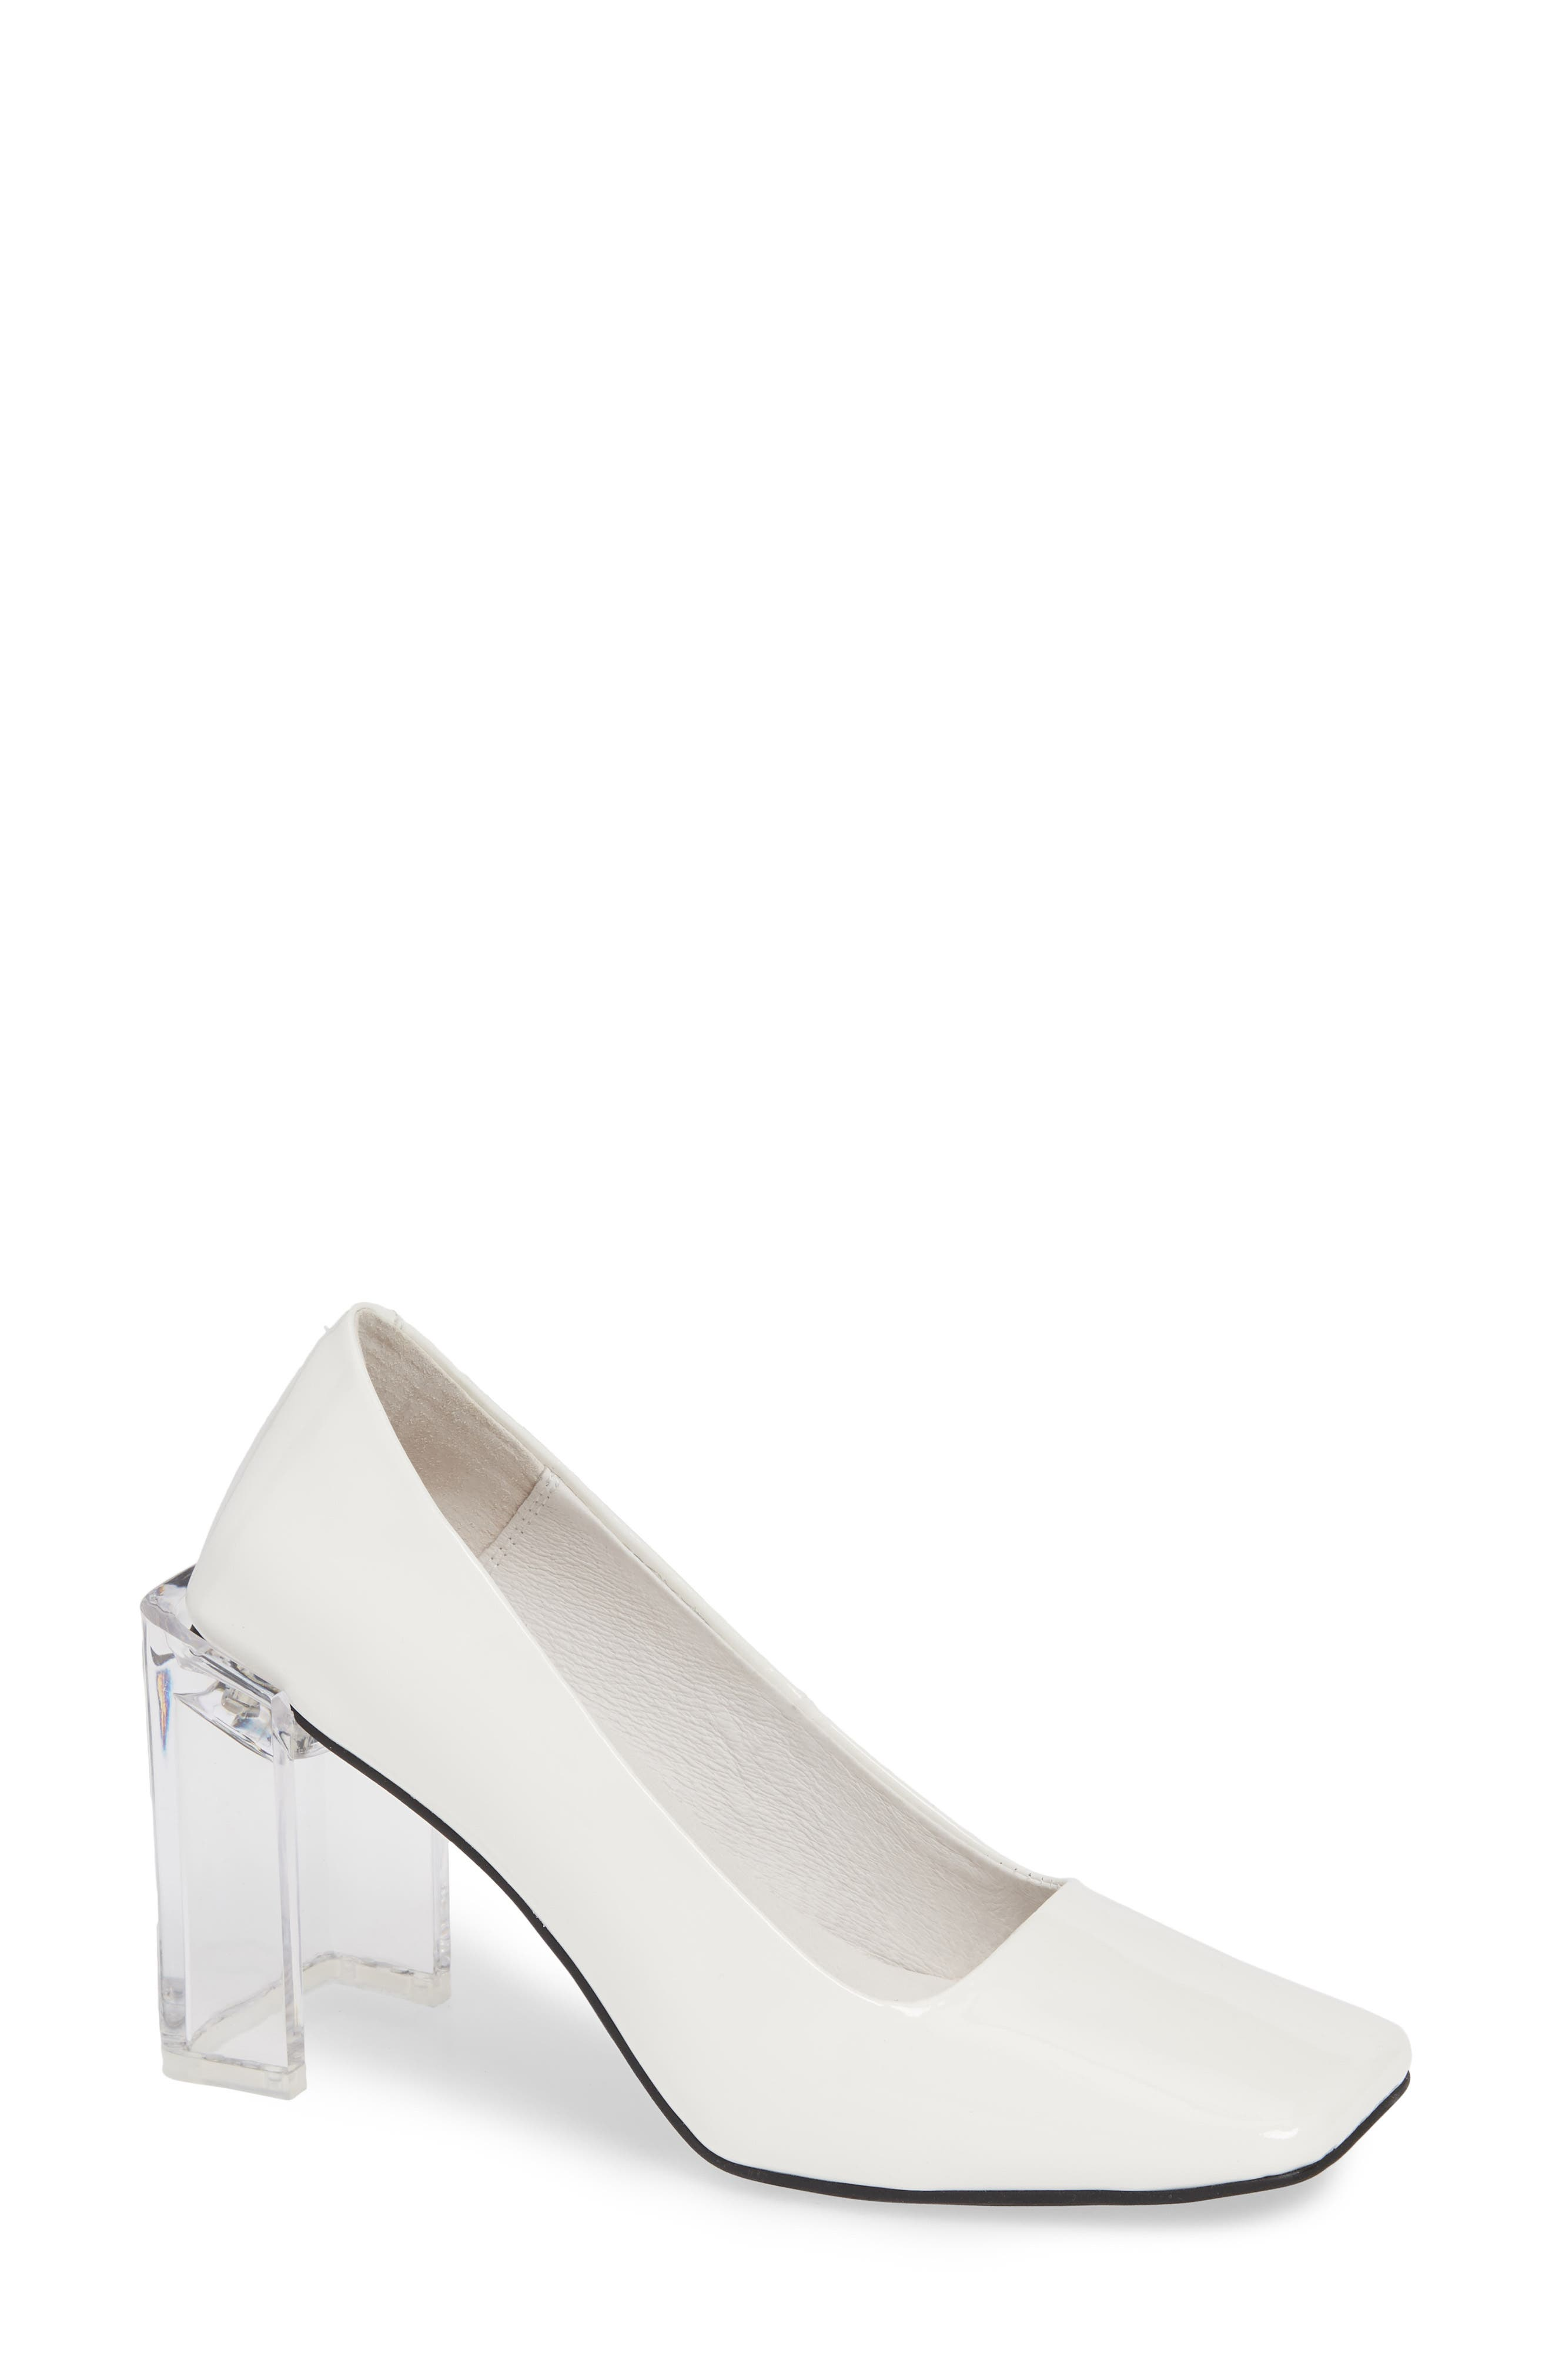 JEFFREY CAMPBELL, Graff Clear Heel Pump, Main thumbnail 1, color, WHITE PATENT LEATHER